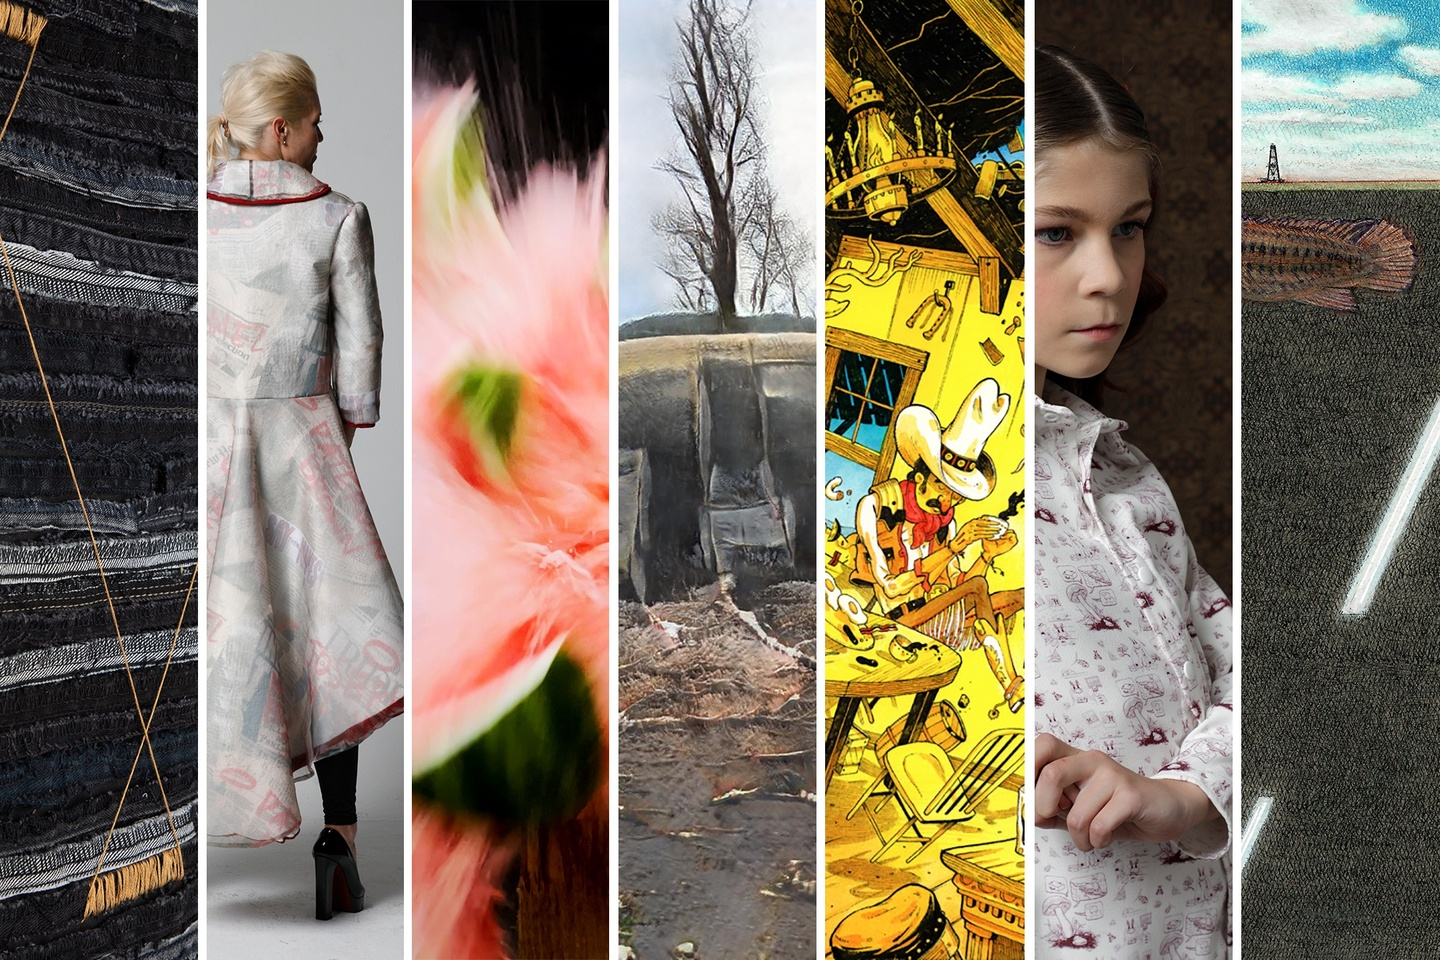 Seven images of work from the show, including fashion design and illustration.